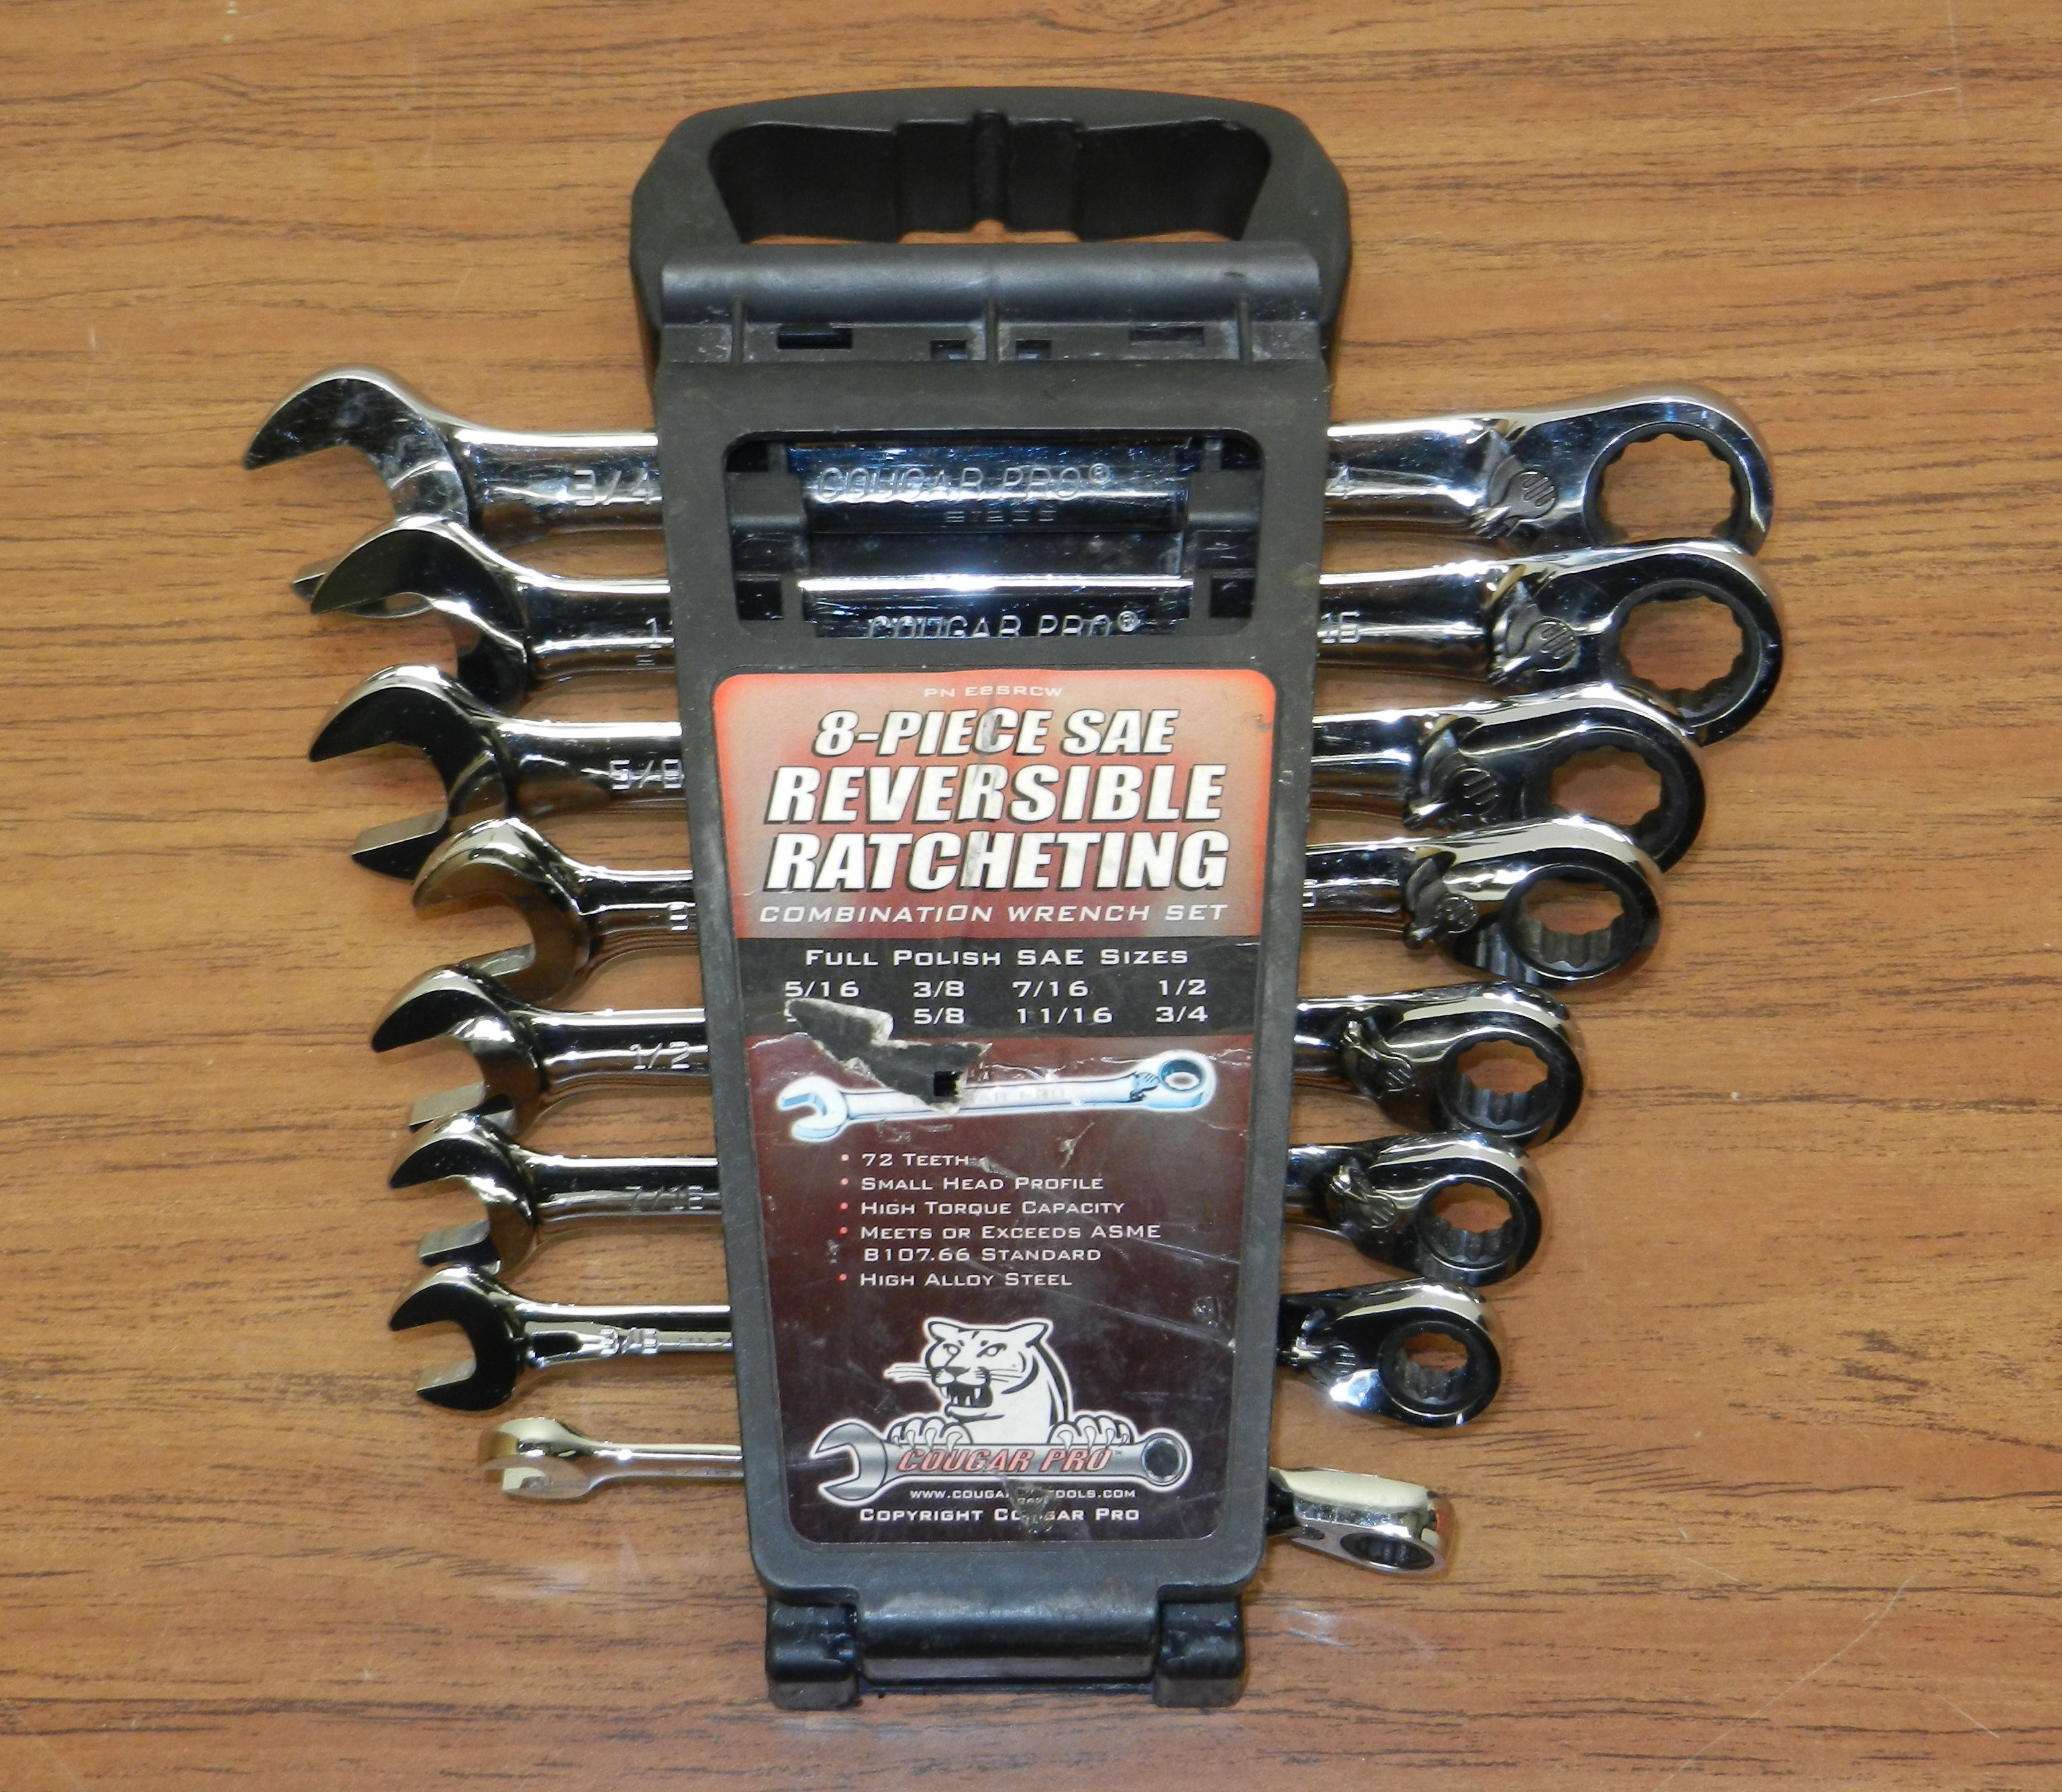 Cougar Pro 8 piece Reversible Ratcheting Combination Wrench Set